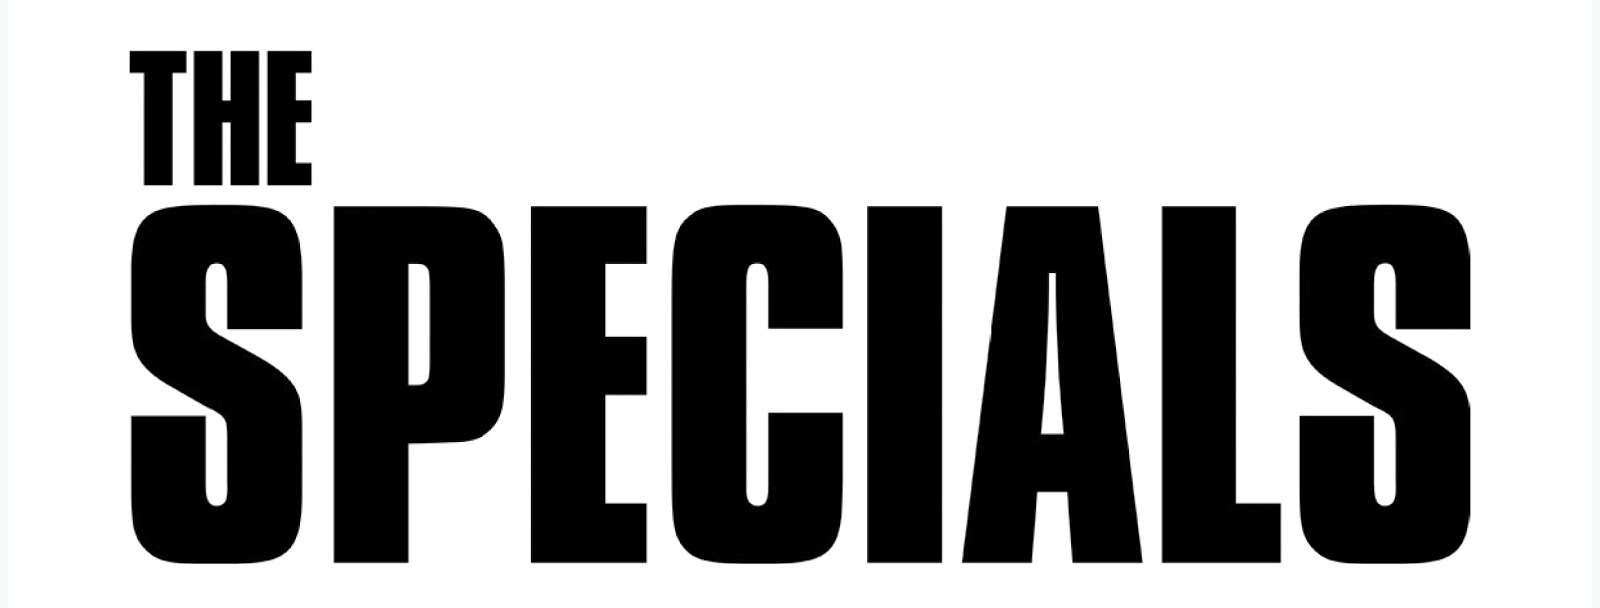 28 Specials This Weekends Specials At The